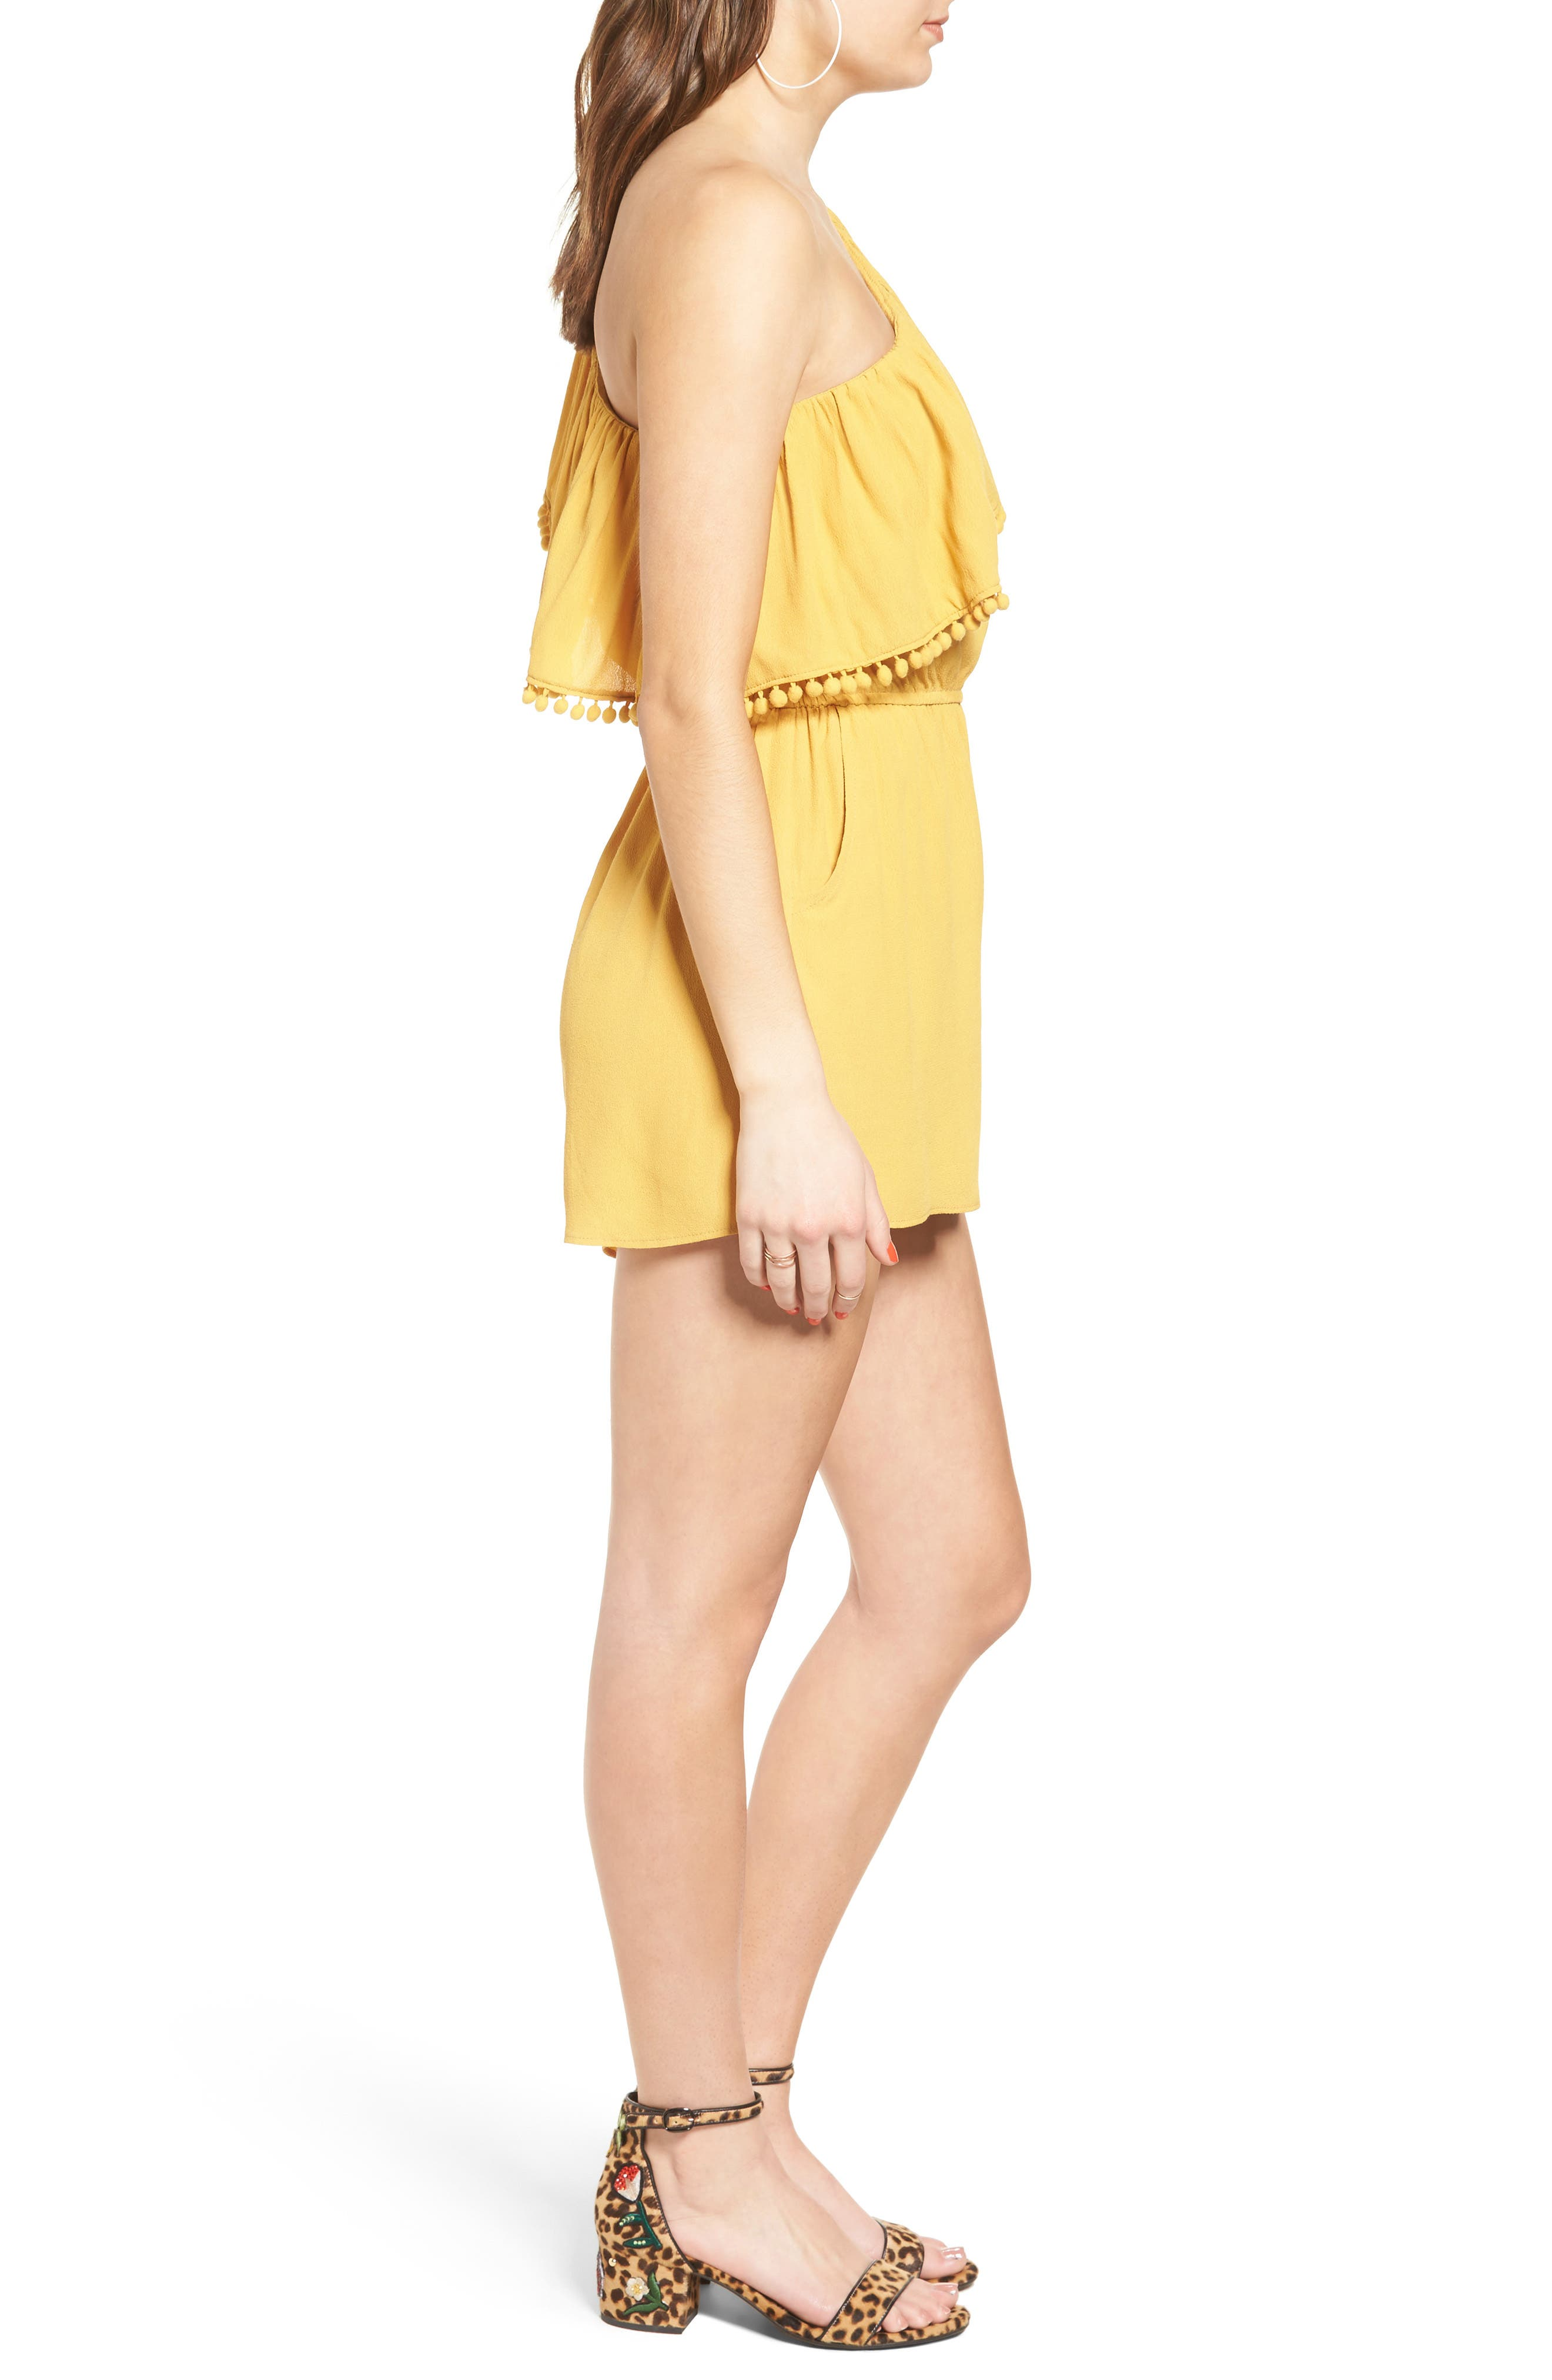 TEN SIXTY SHERMAN, One-Shoulder Ruffle Romper, Alternate thumbnail 3, color, 701